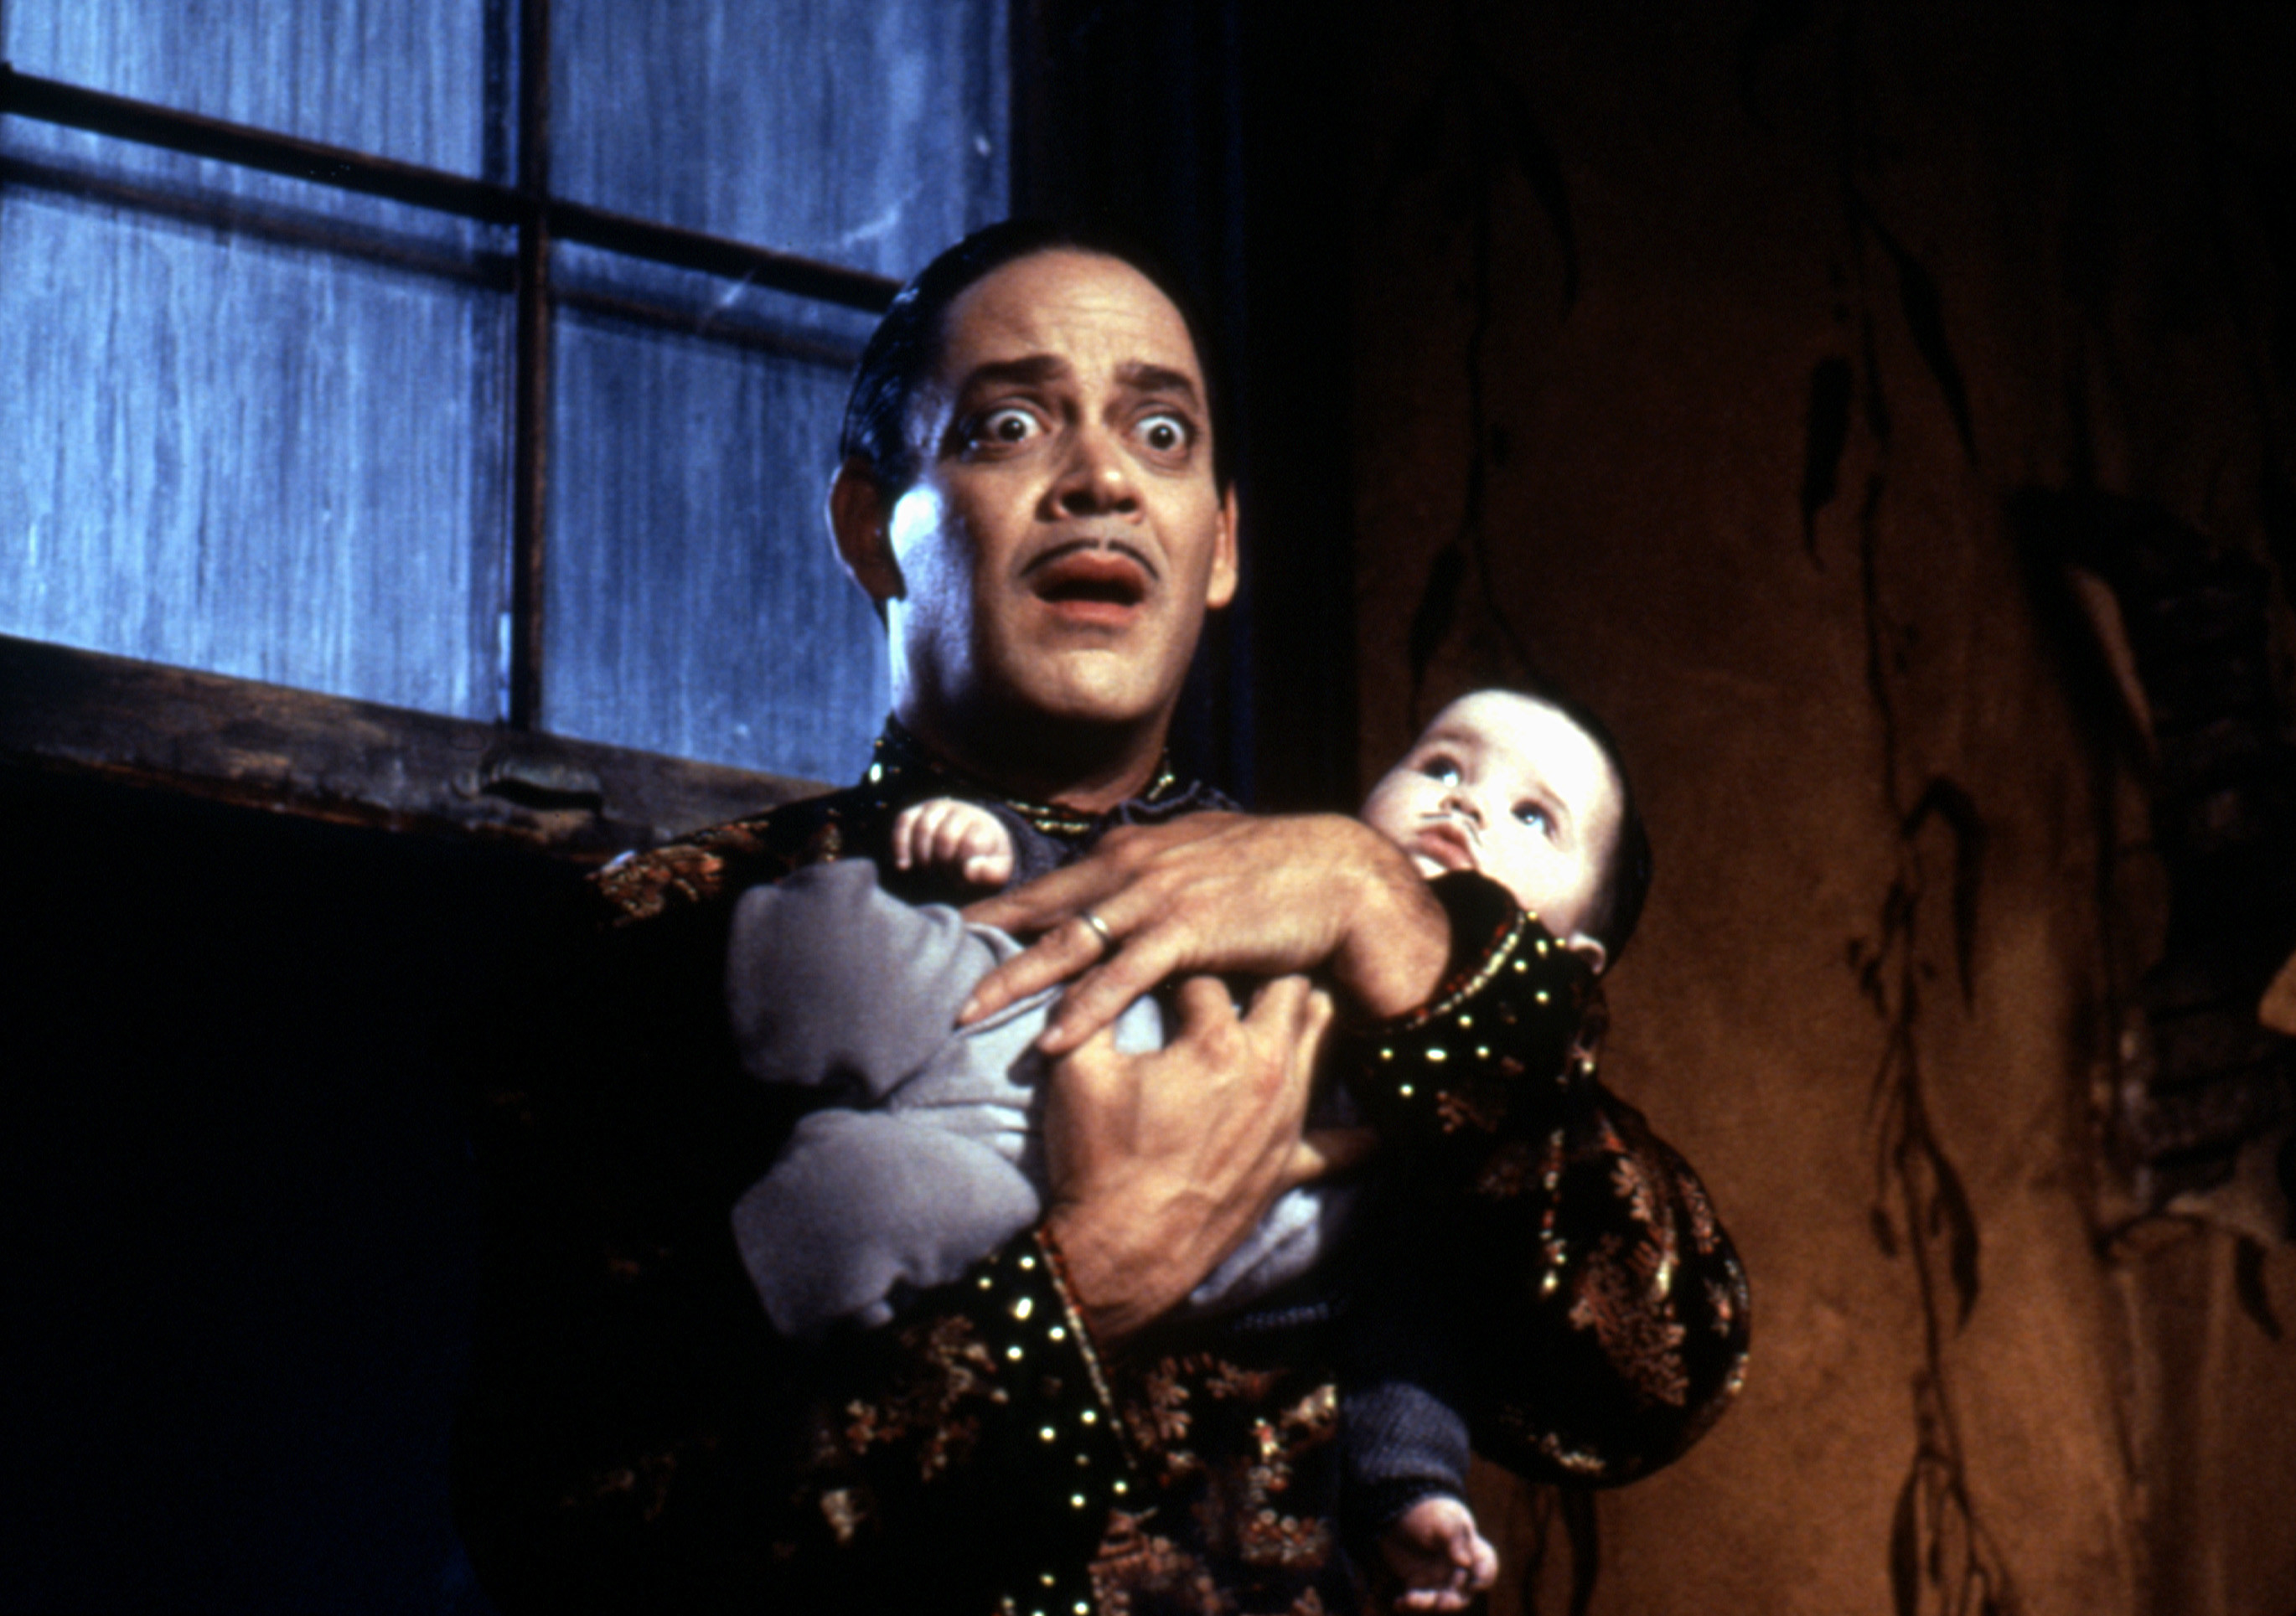 Gomez holds the baby, looking terrified